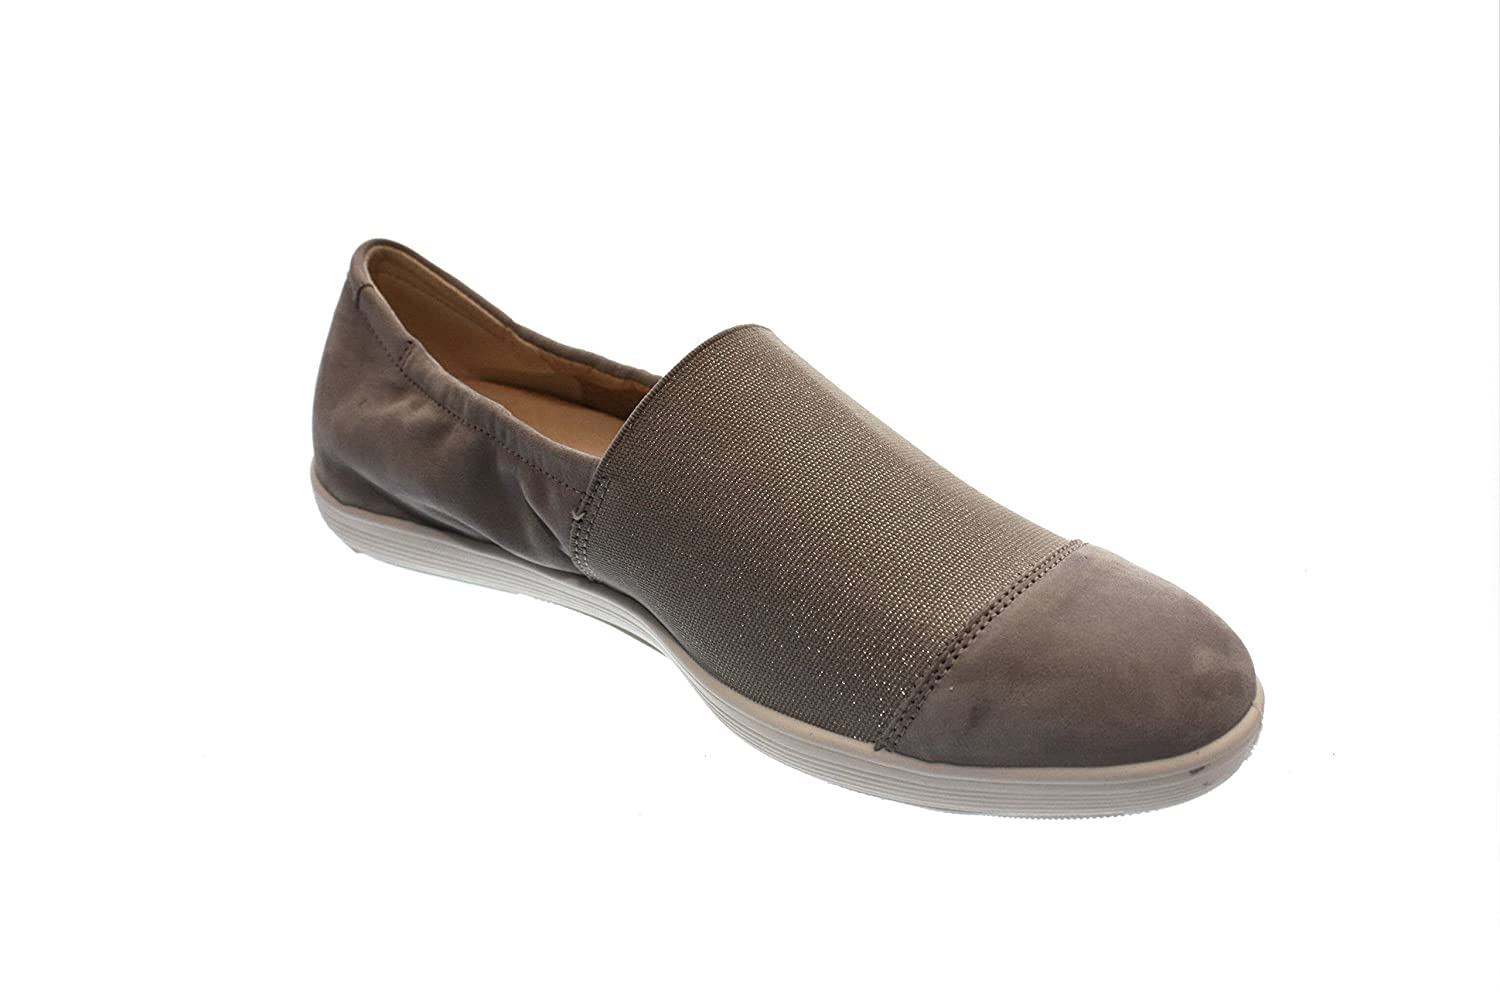 Legero Damen Slipper 2-00833-04 Grau Grau 2-00833-04 464181 dc1330